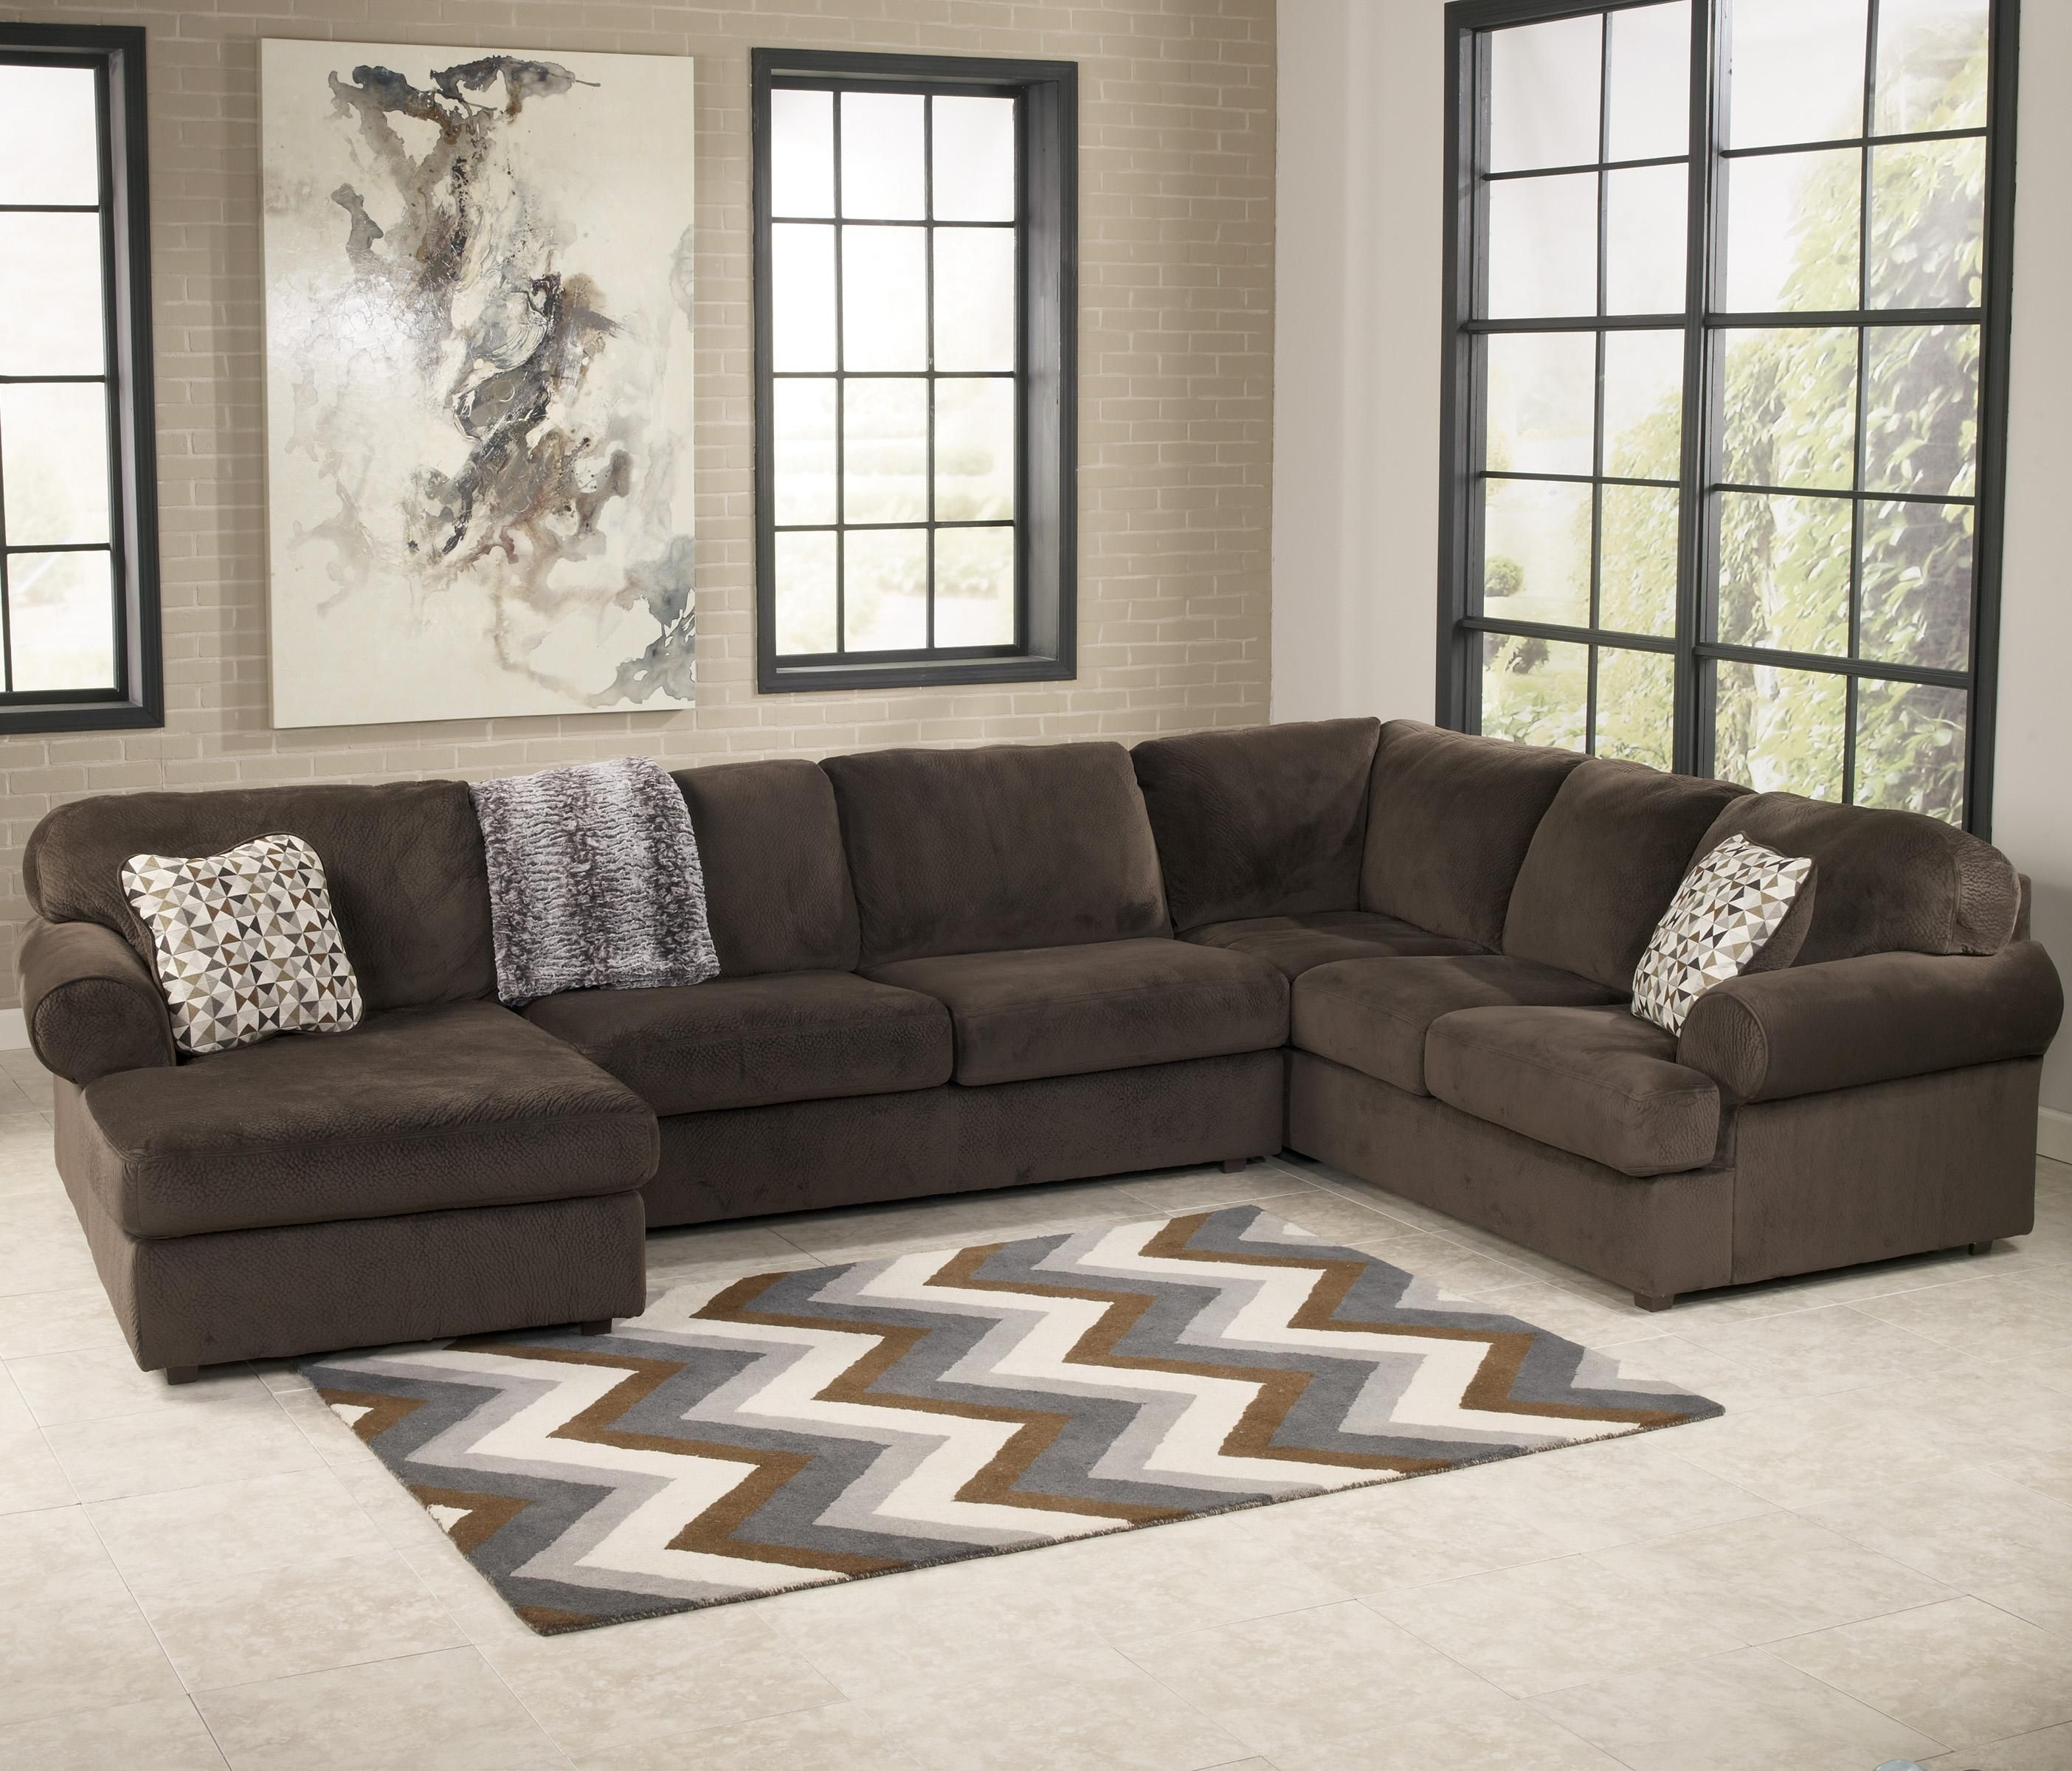 Jessa Place – Chocolate Casual Sectional Sofa With Left Chaise Inside Jackson Ms Sectional Sofas (View 4 of 10)